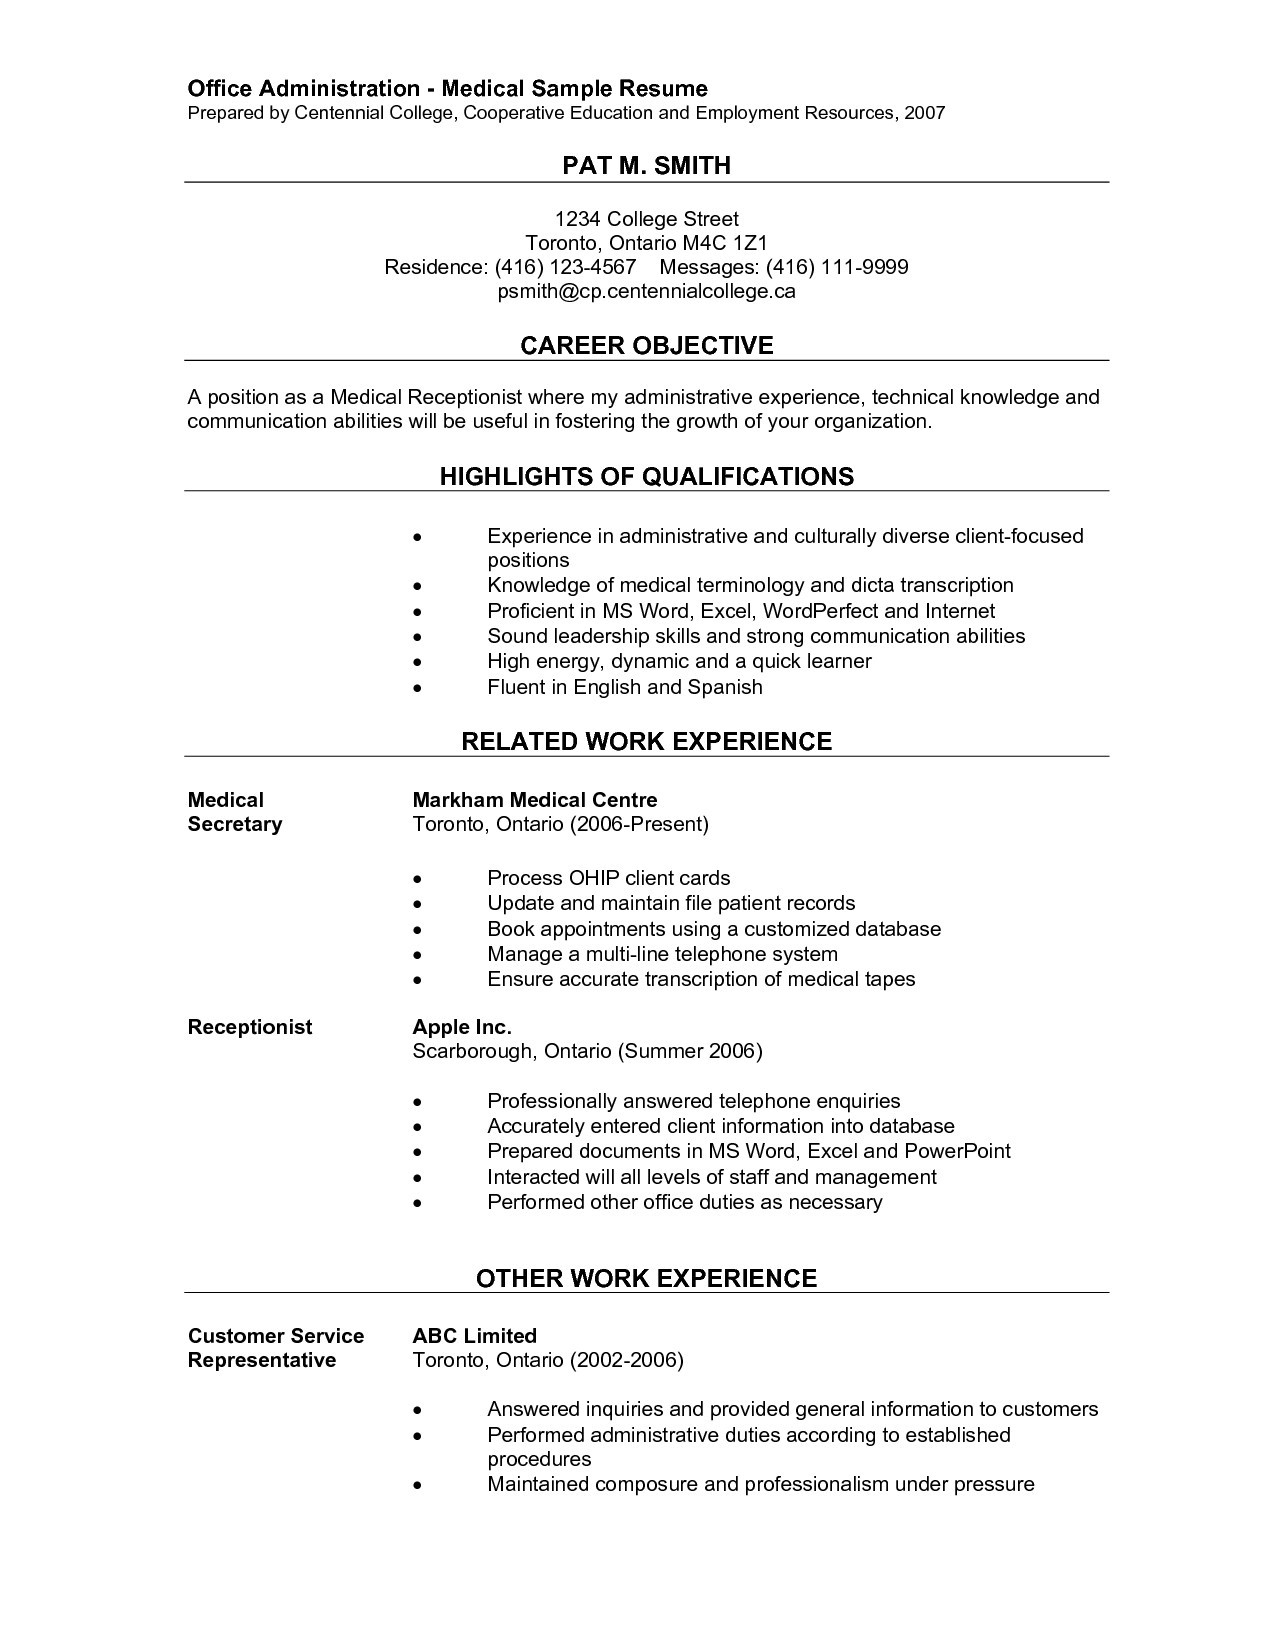 Medical Office Manager Resume Examples - Medical Fice Manager Resume Examples Best New Medical Fice Manager